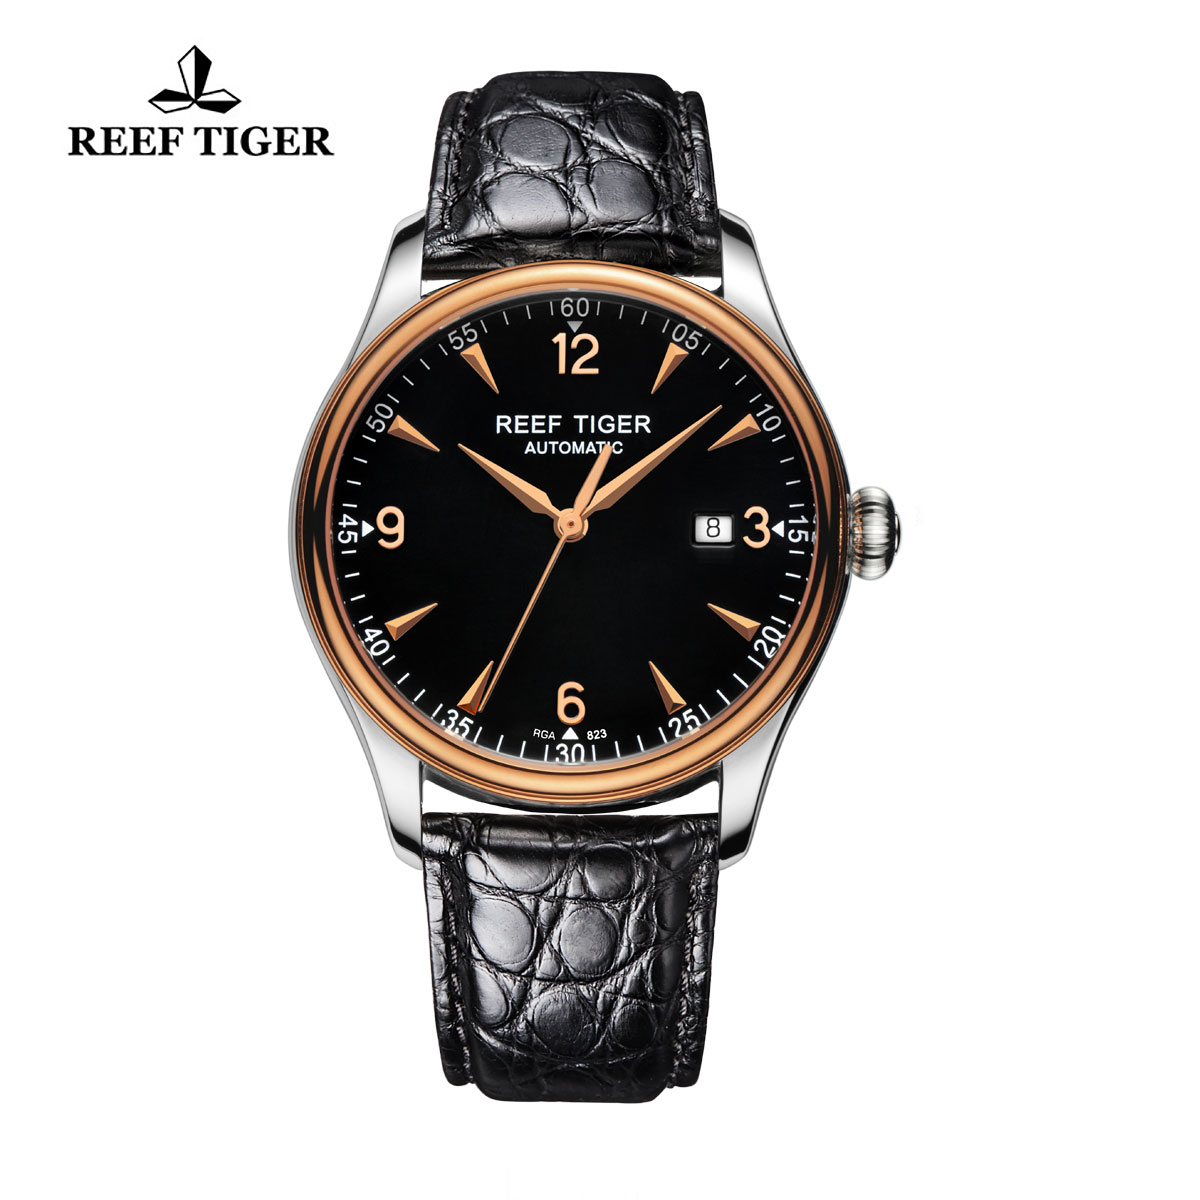 Reef Tiger Heritage Dress Automatic Watch Black Dial Alligator Strap RGA823-PBA